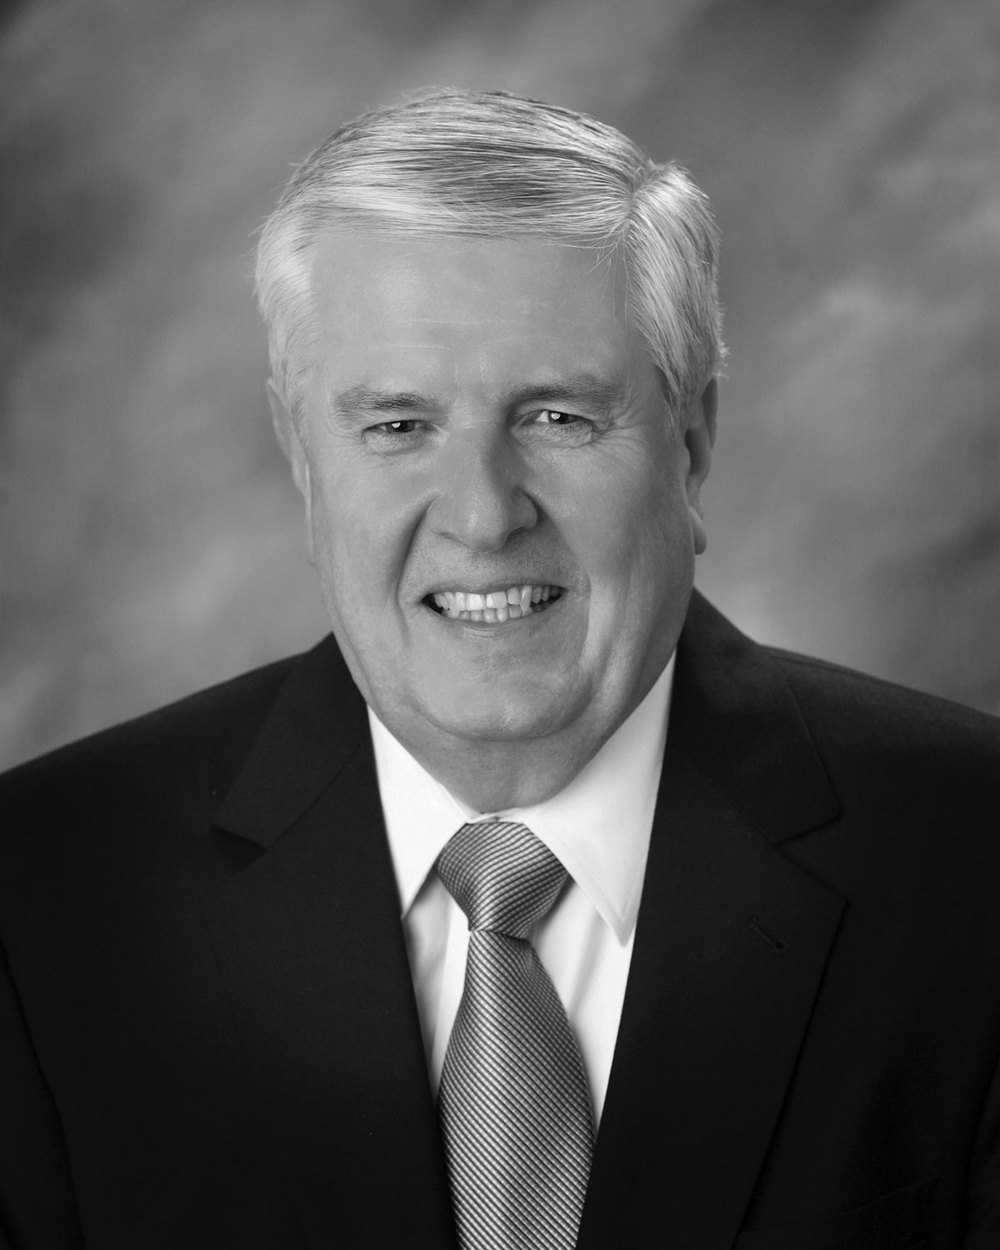 John J. Bishop Ohio Northern University Chairman/Board The Motorists Insurance Group Class of 1972